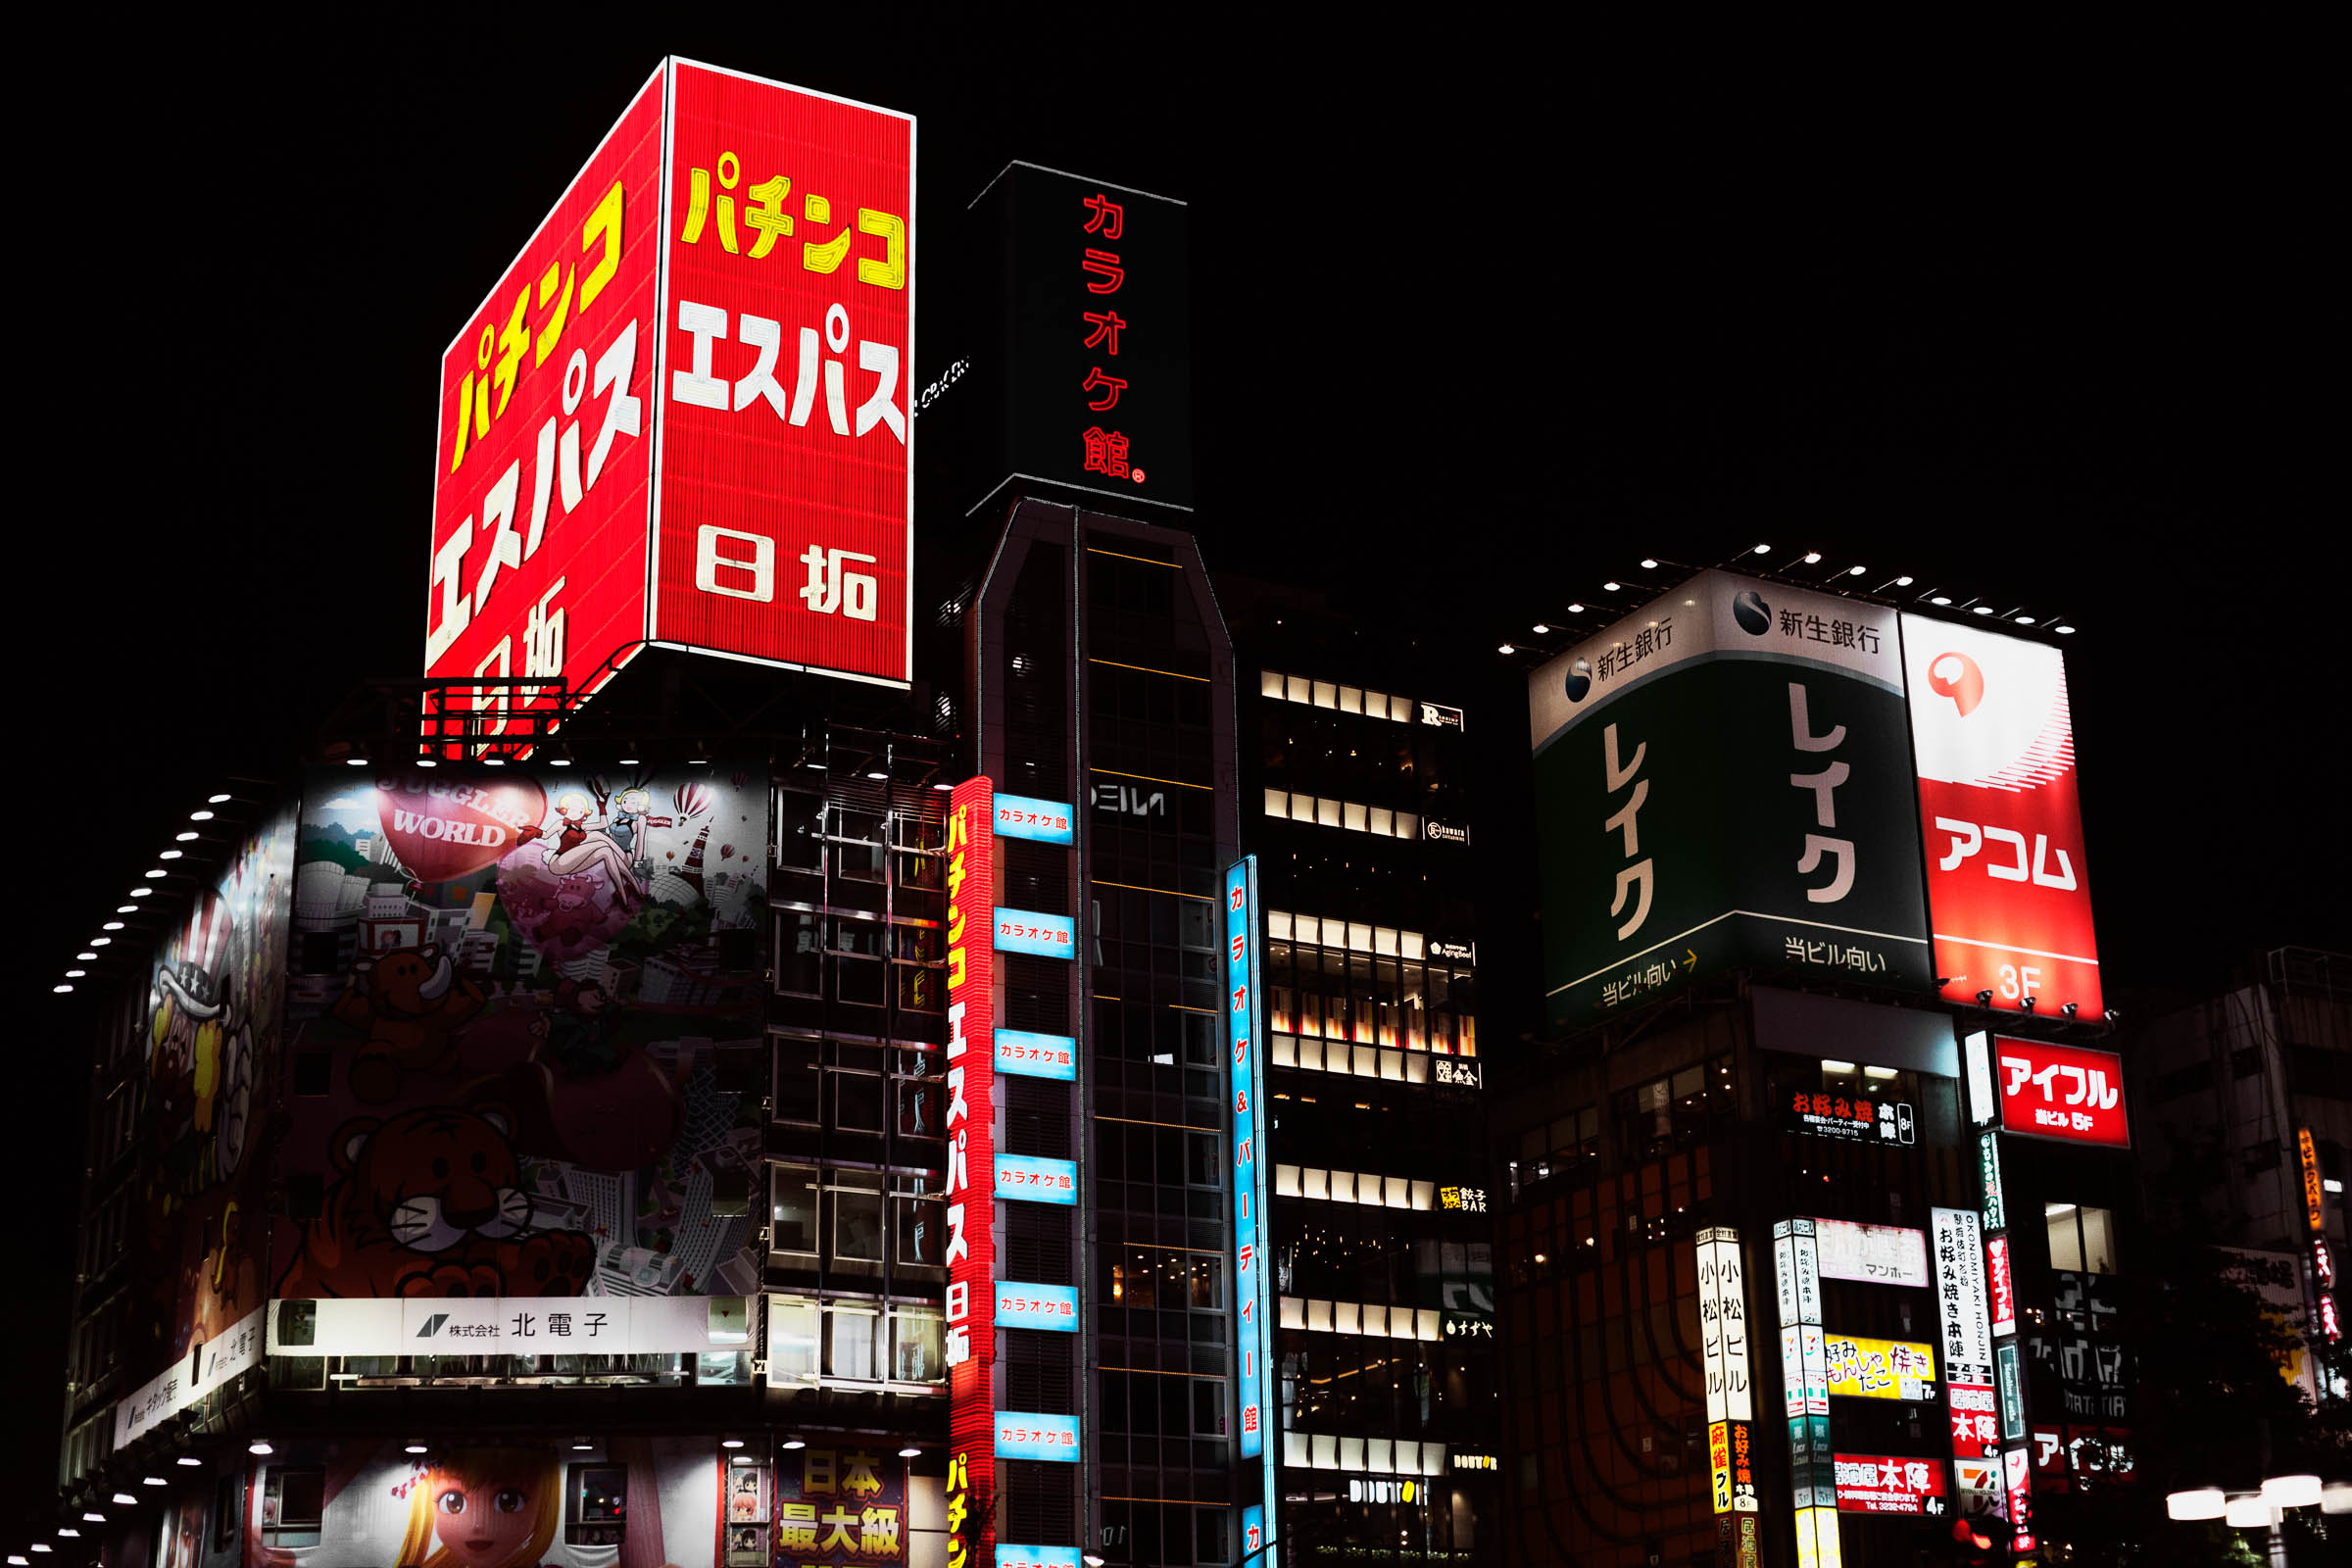 Chacon Images_Japan_Web-133.jpg